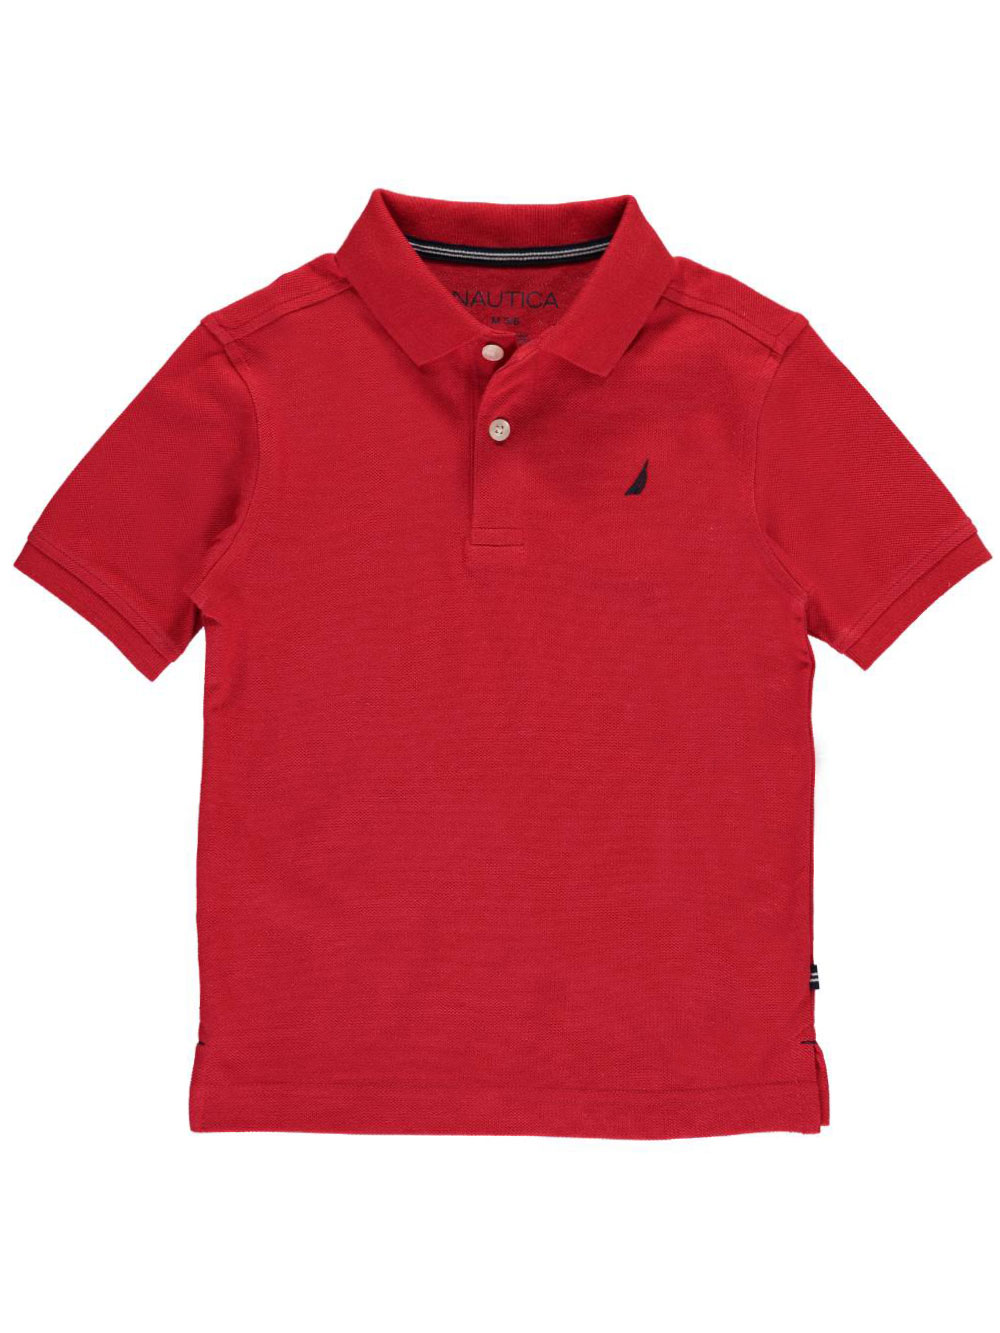 Image of Nautica Little Boys Toddler Solid State Pique Polo Sizes 2T  4T  carmine 4t